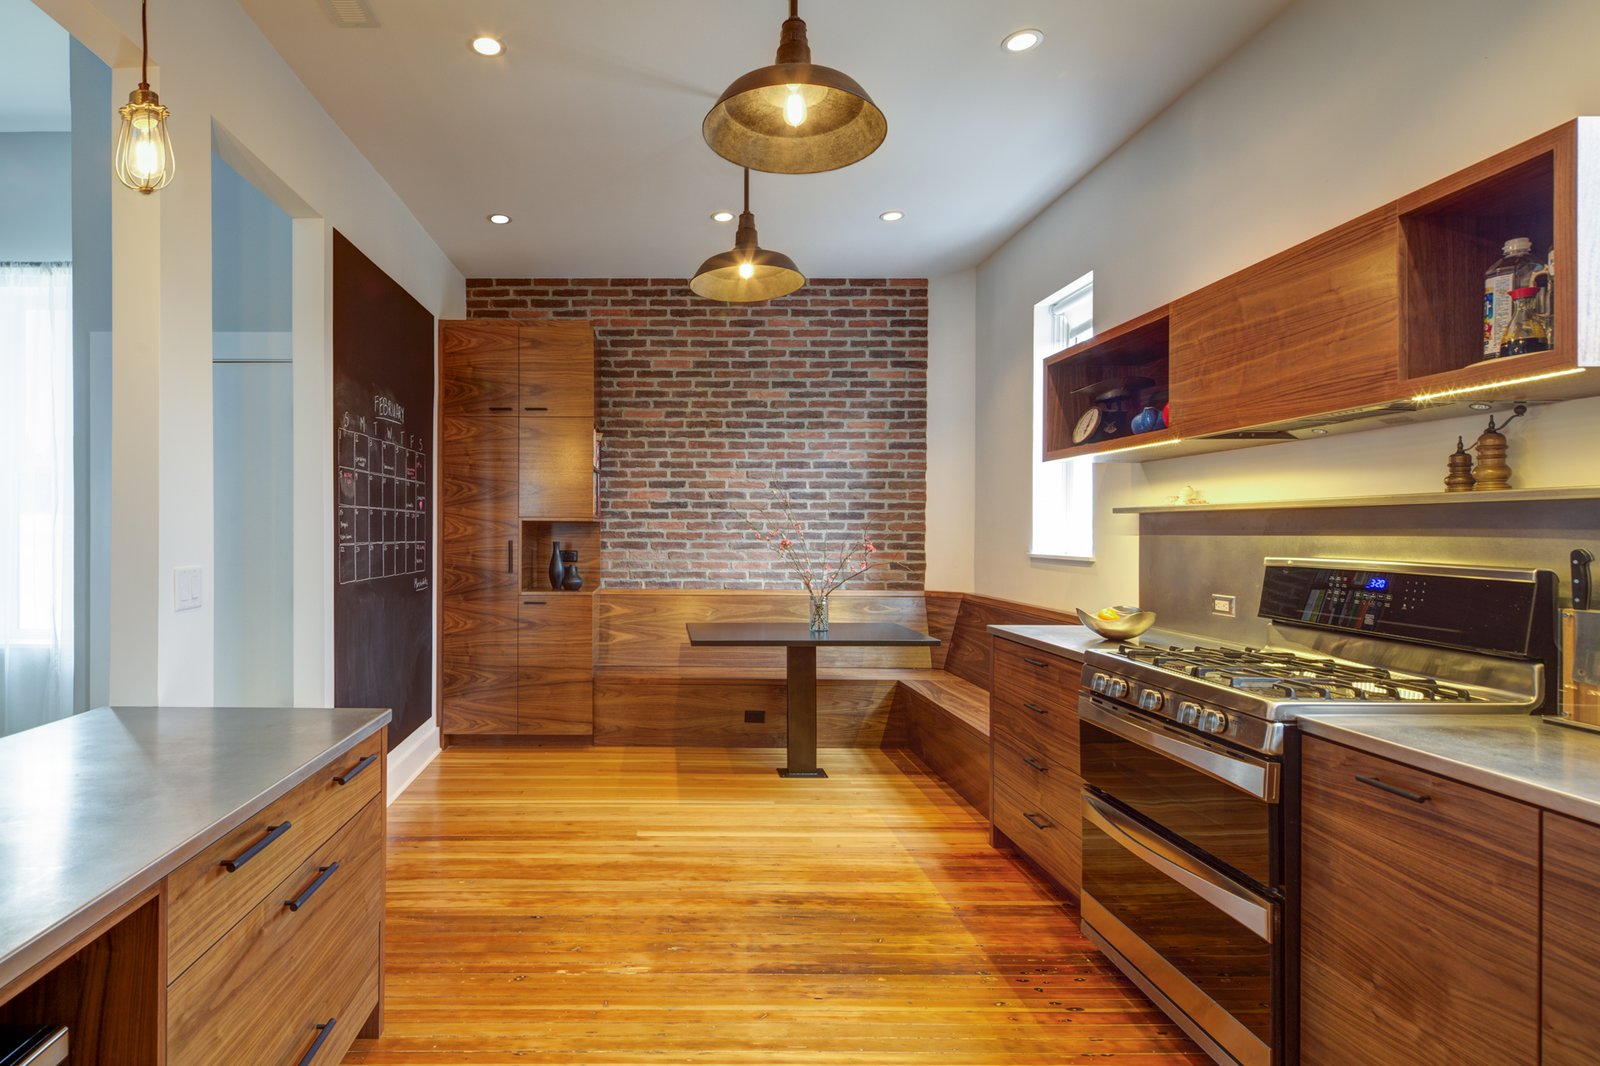 Kitchen, Pendant, Wall Oven, Wood, Range, Metal, Medium Hardwood, Metal, and Recessed  Kitchen Metal Metal Medium Hardwood Photos from What's the Most Overlooked Feature When Planning a Kitchen Renovation?